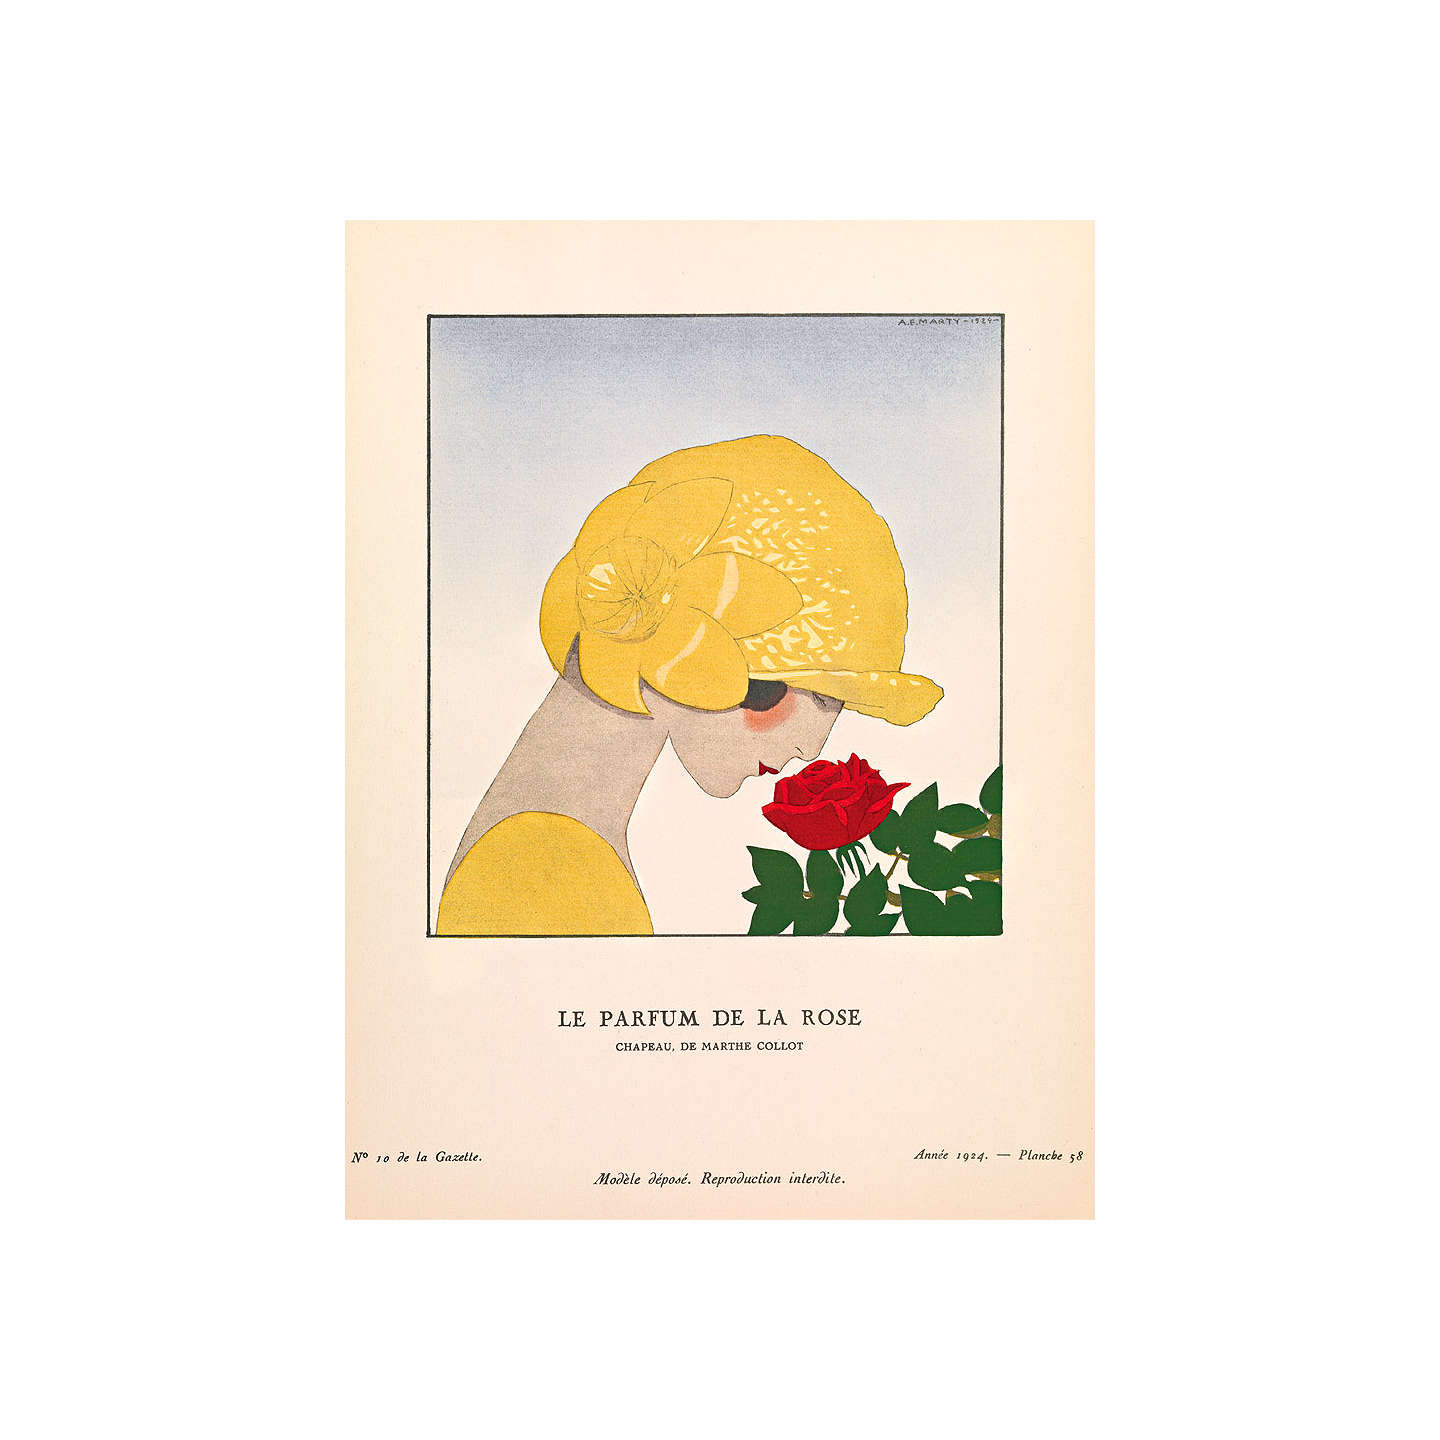 BuyThe Courtauld Gallery, Gazette Du Bon Ton - No10 1924 Le Parfum De La Rose Print, 50 x 40cm, Stretched Canvas Online at johnlewis.com